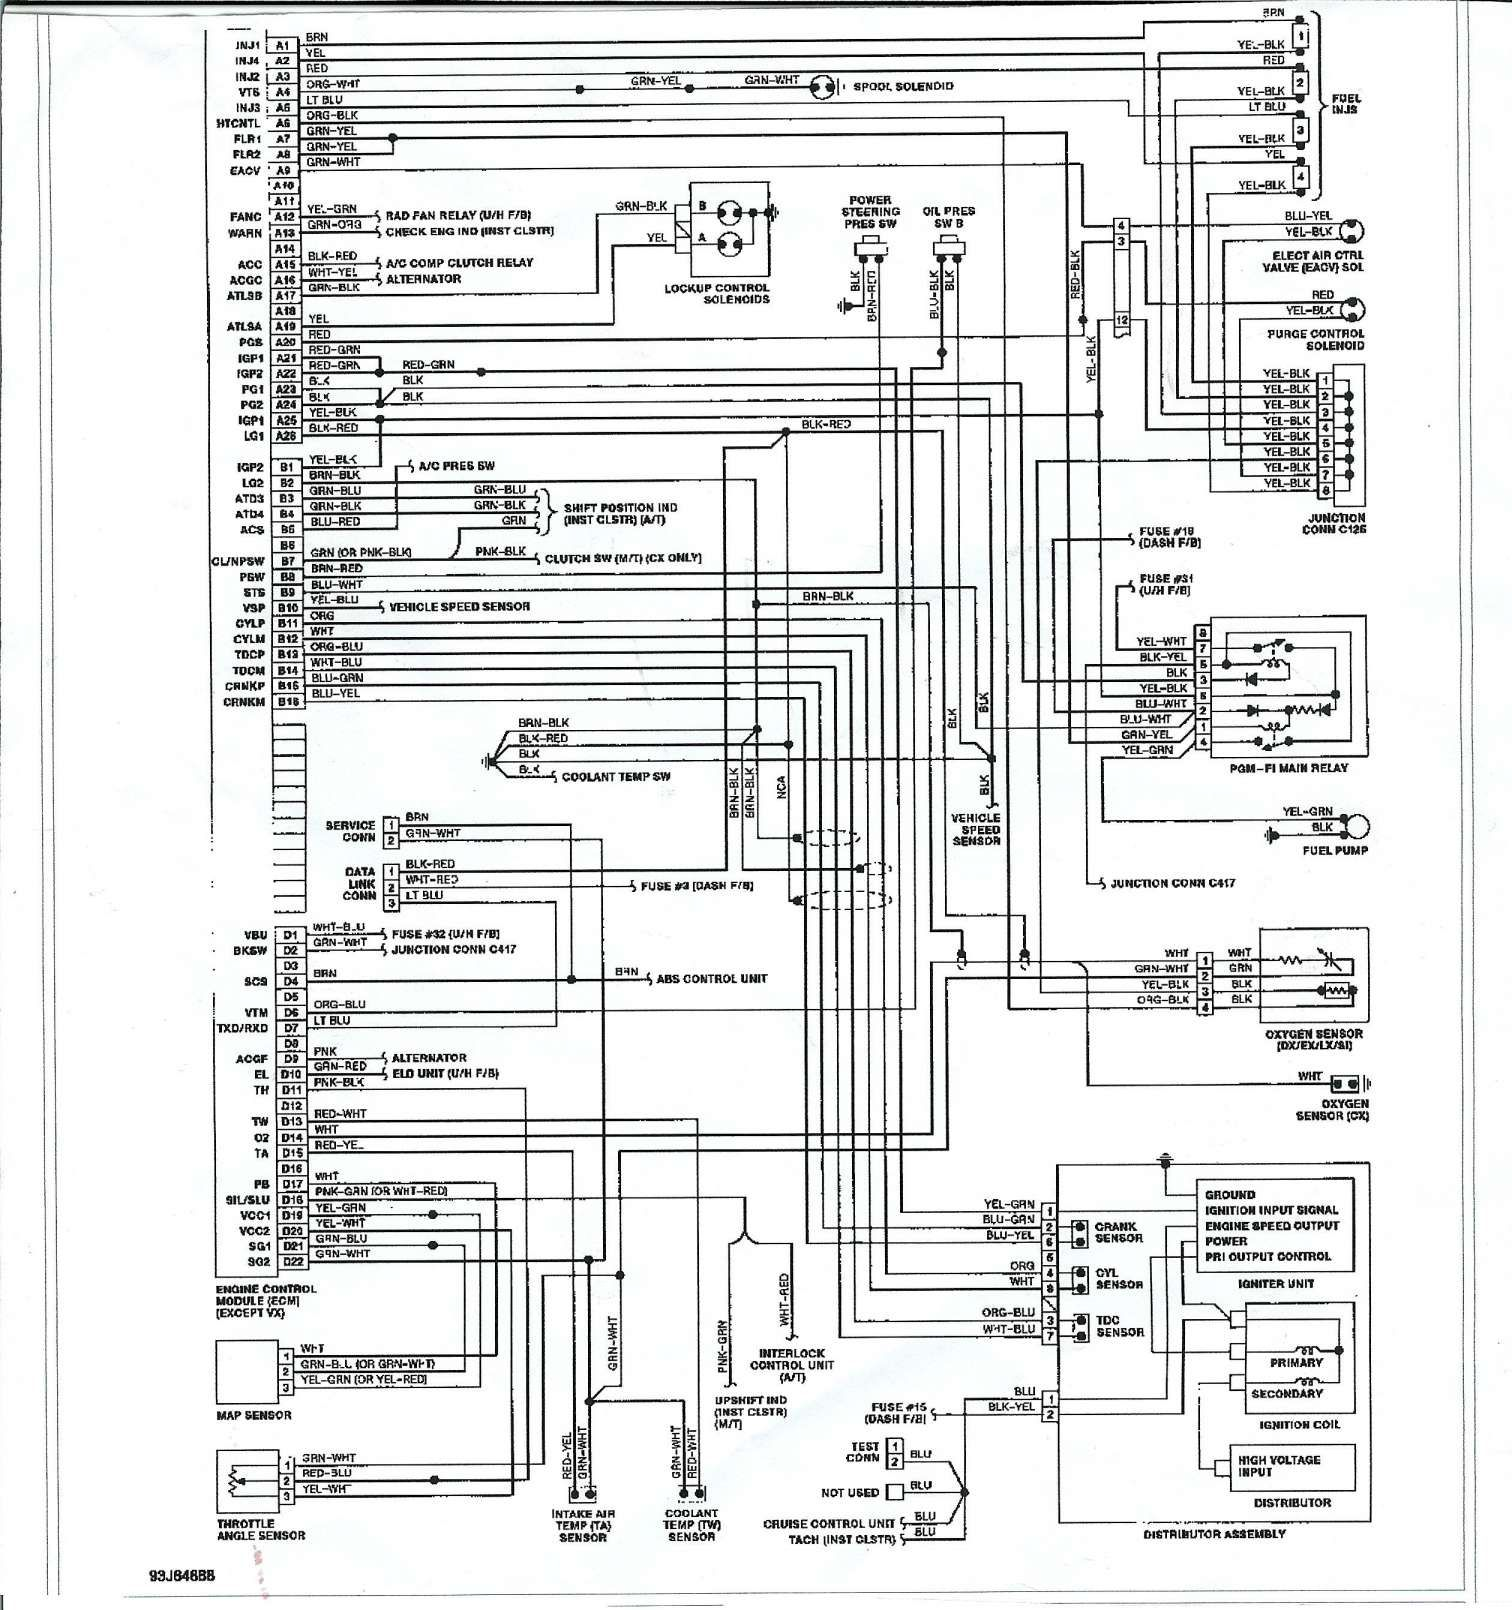 Pin On Cord 6 0 Motor Diagram